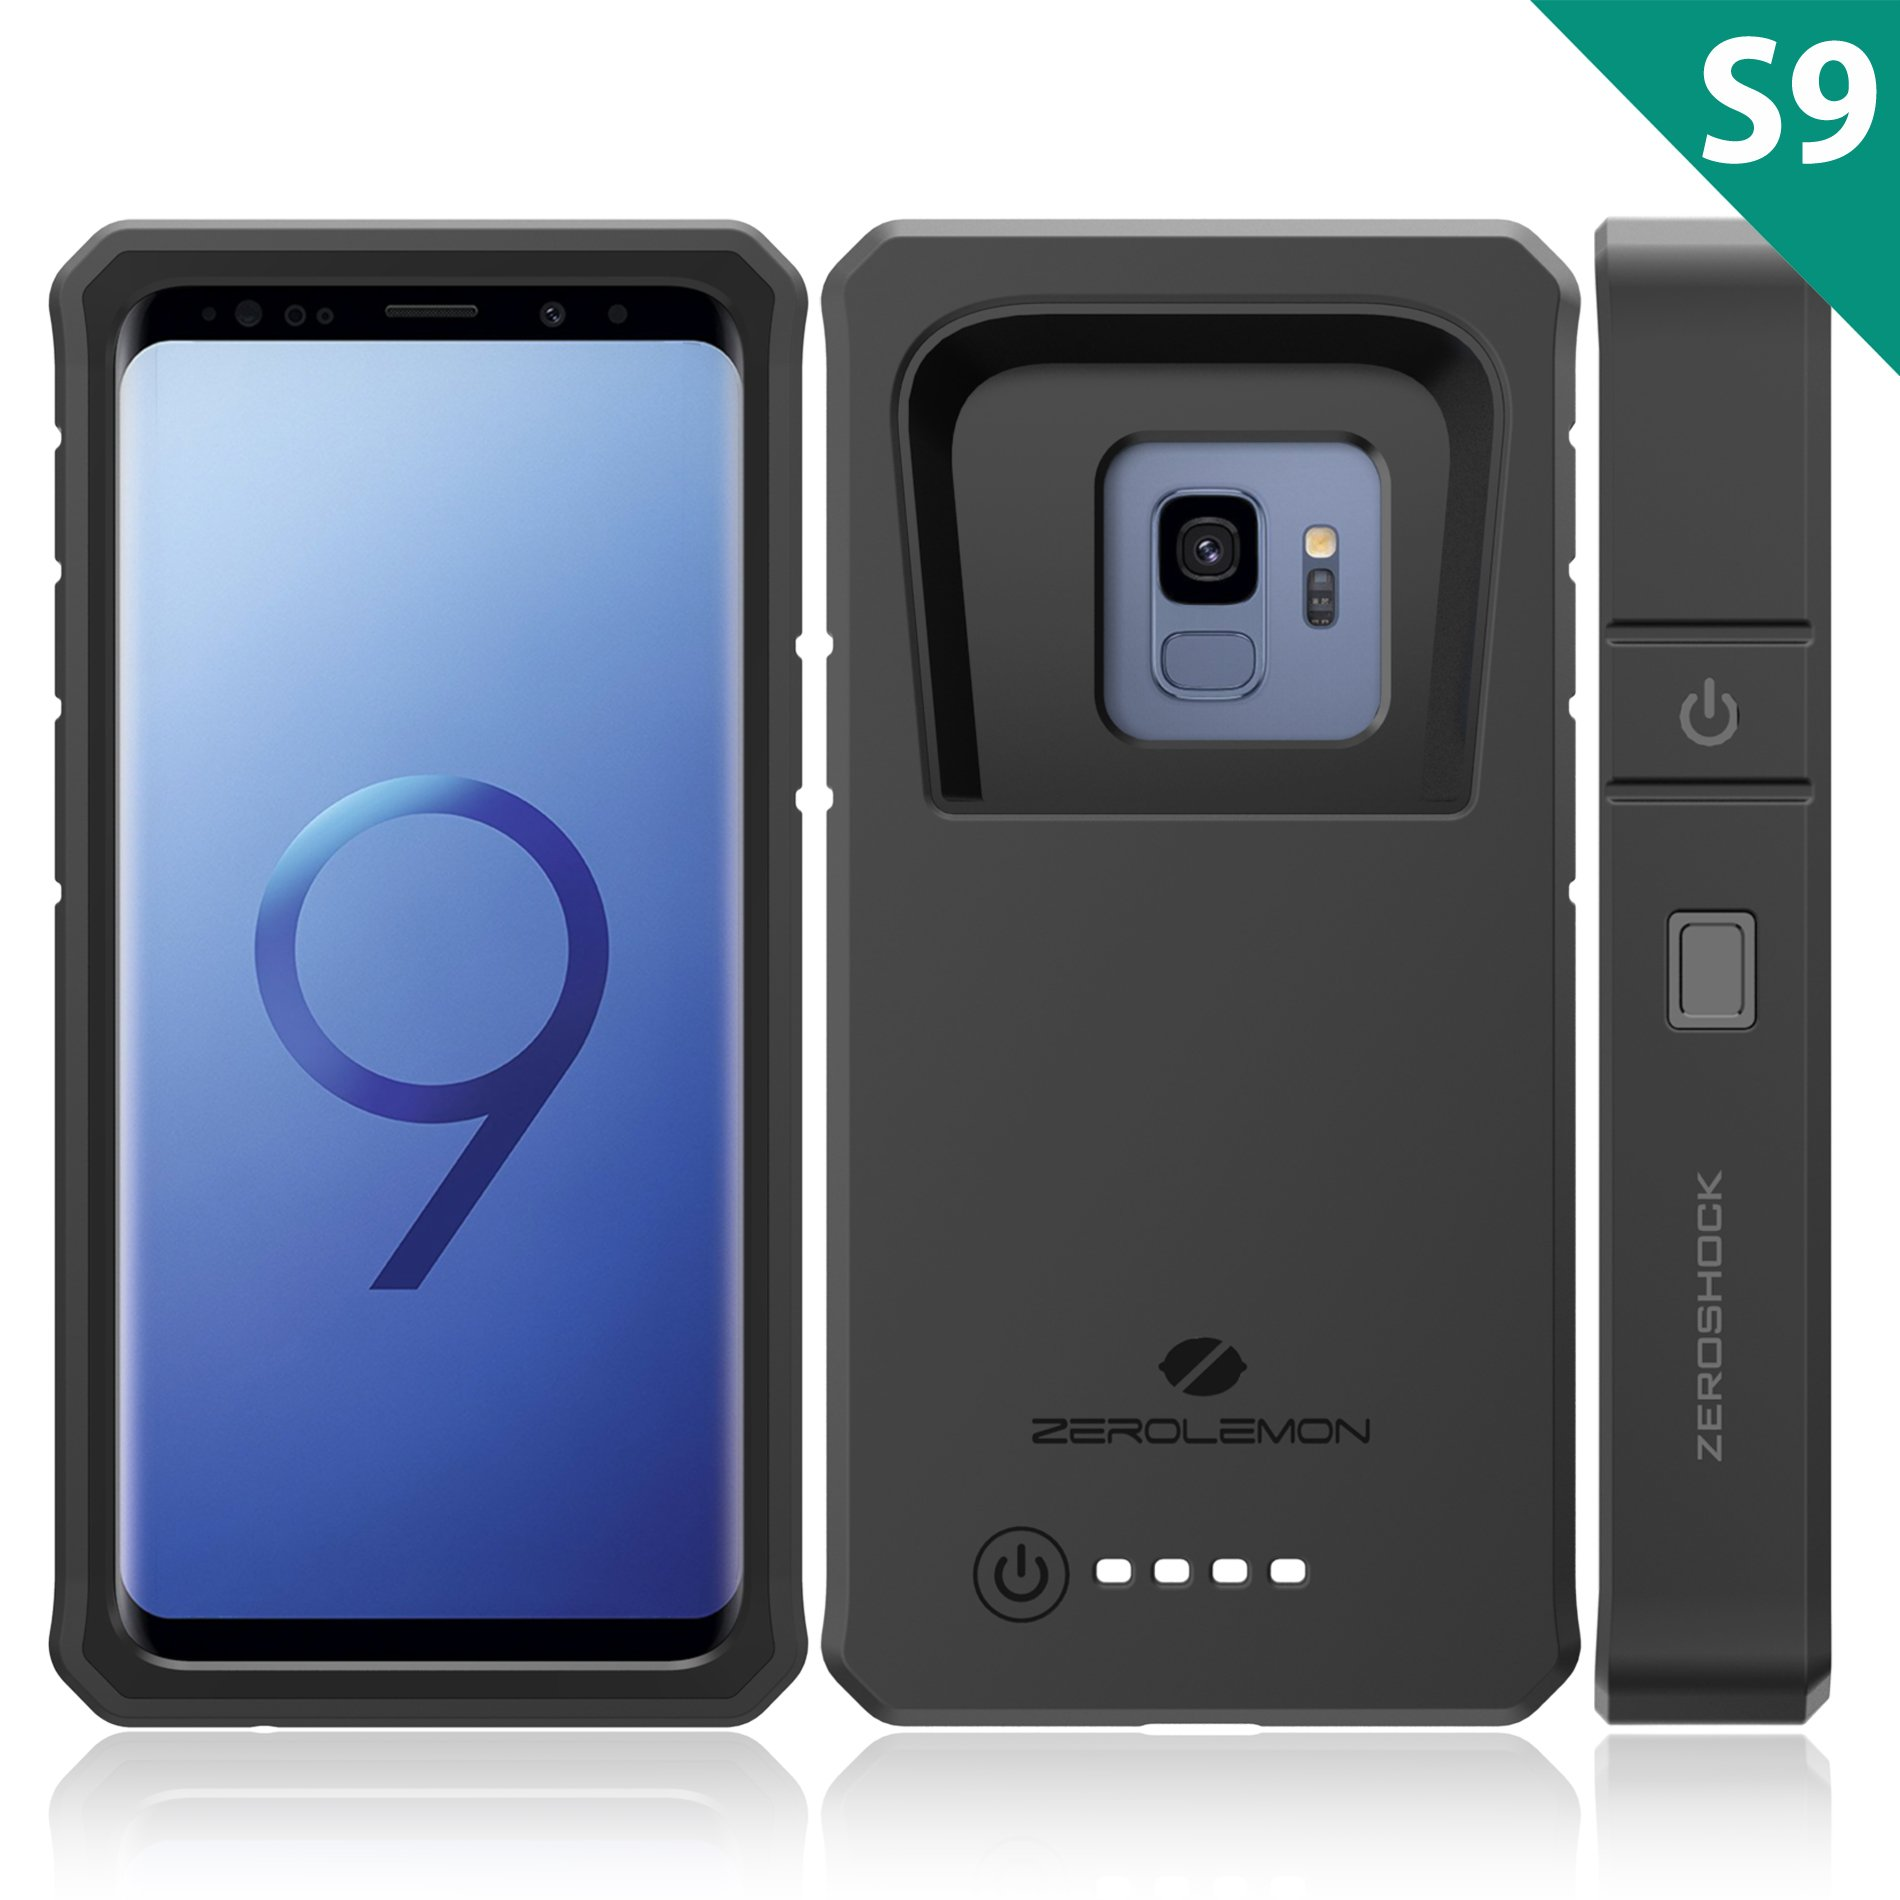 Galaxy S9 Battery Charging Case, ZeroLemon ZeroShock 8000mAh Extended Battery with Full Edge Protection Rugged Charging Case for Samsung Galaxy S9 - Black